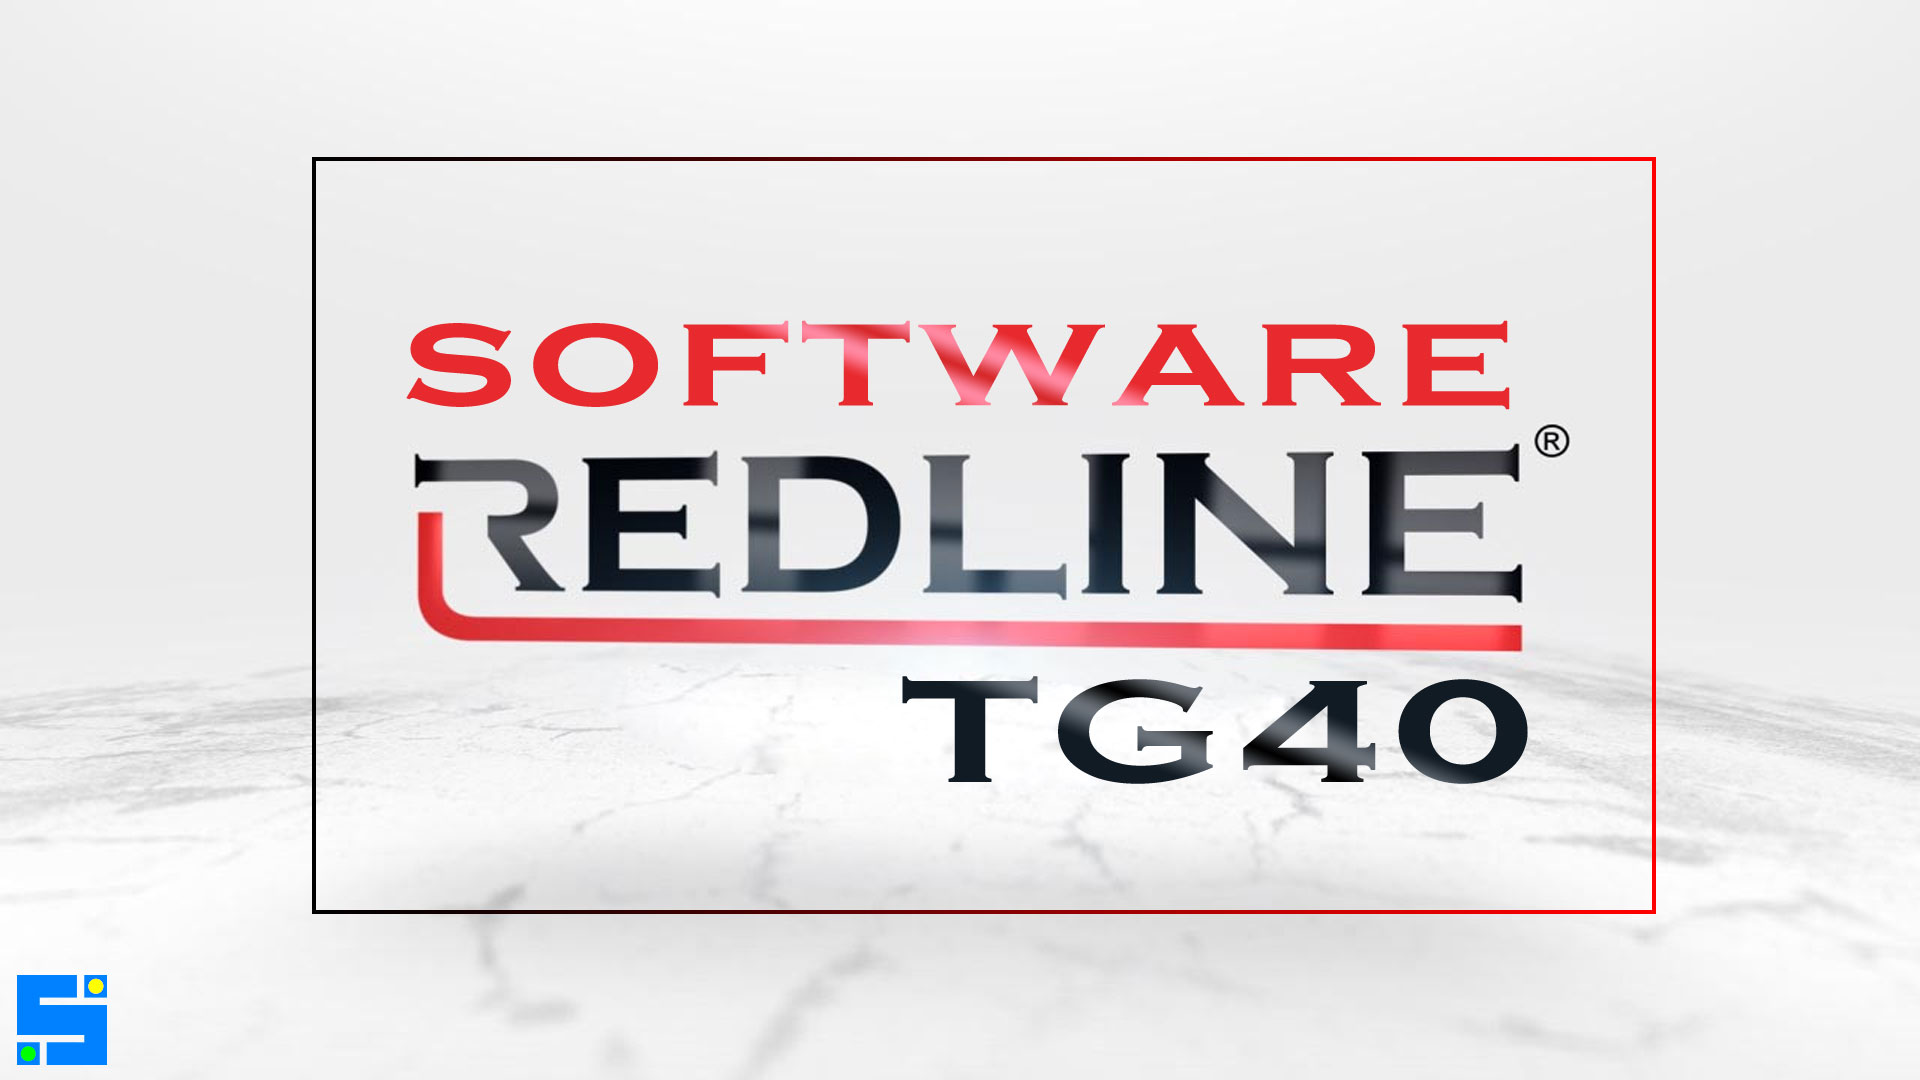 redline tg 40 hd software download New Update Firmware Receiver